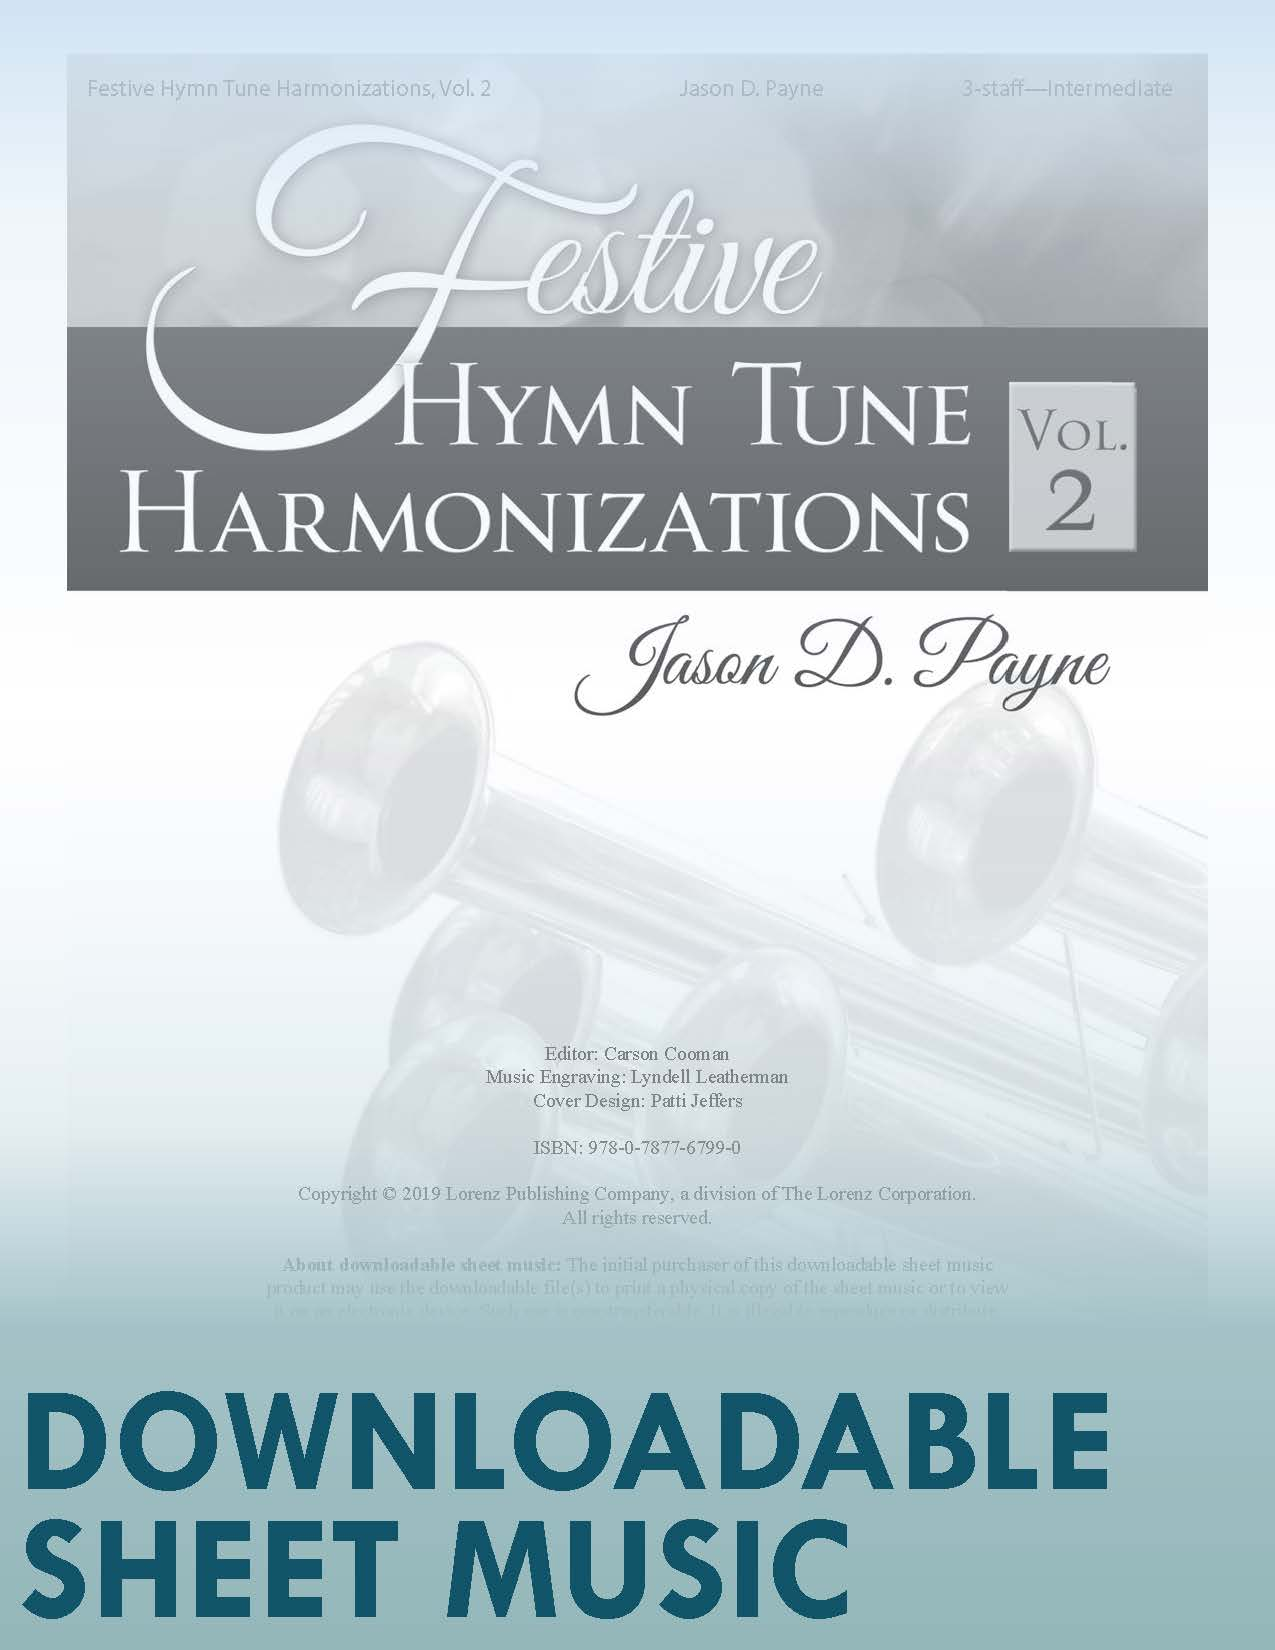 Festive Hymn Tune Harmonizations, Vol. 2 - Digital Download